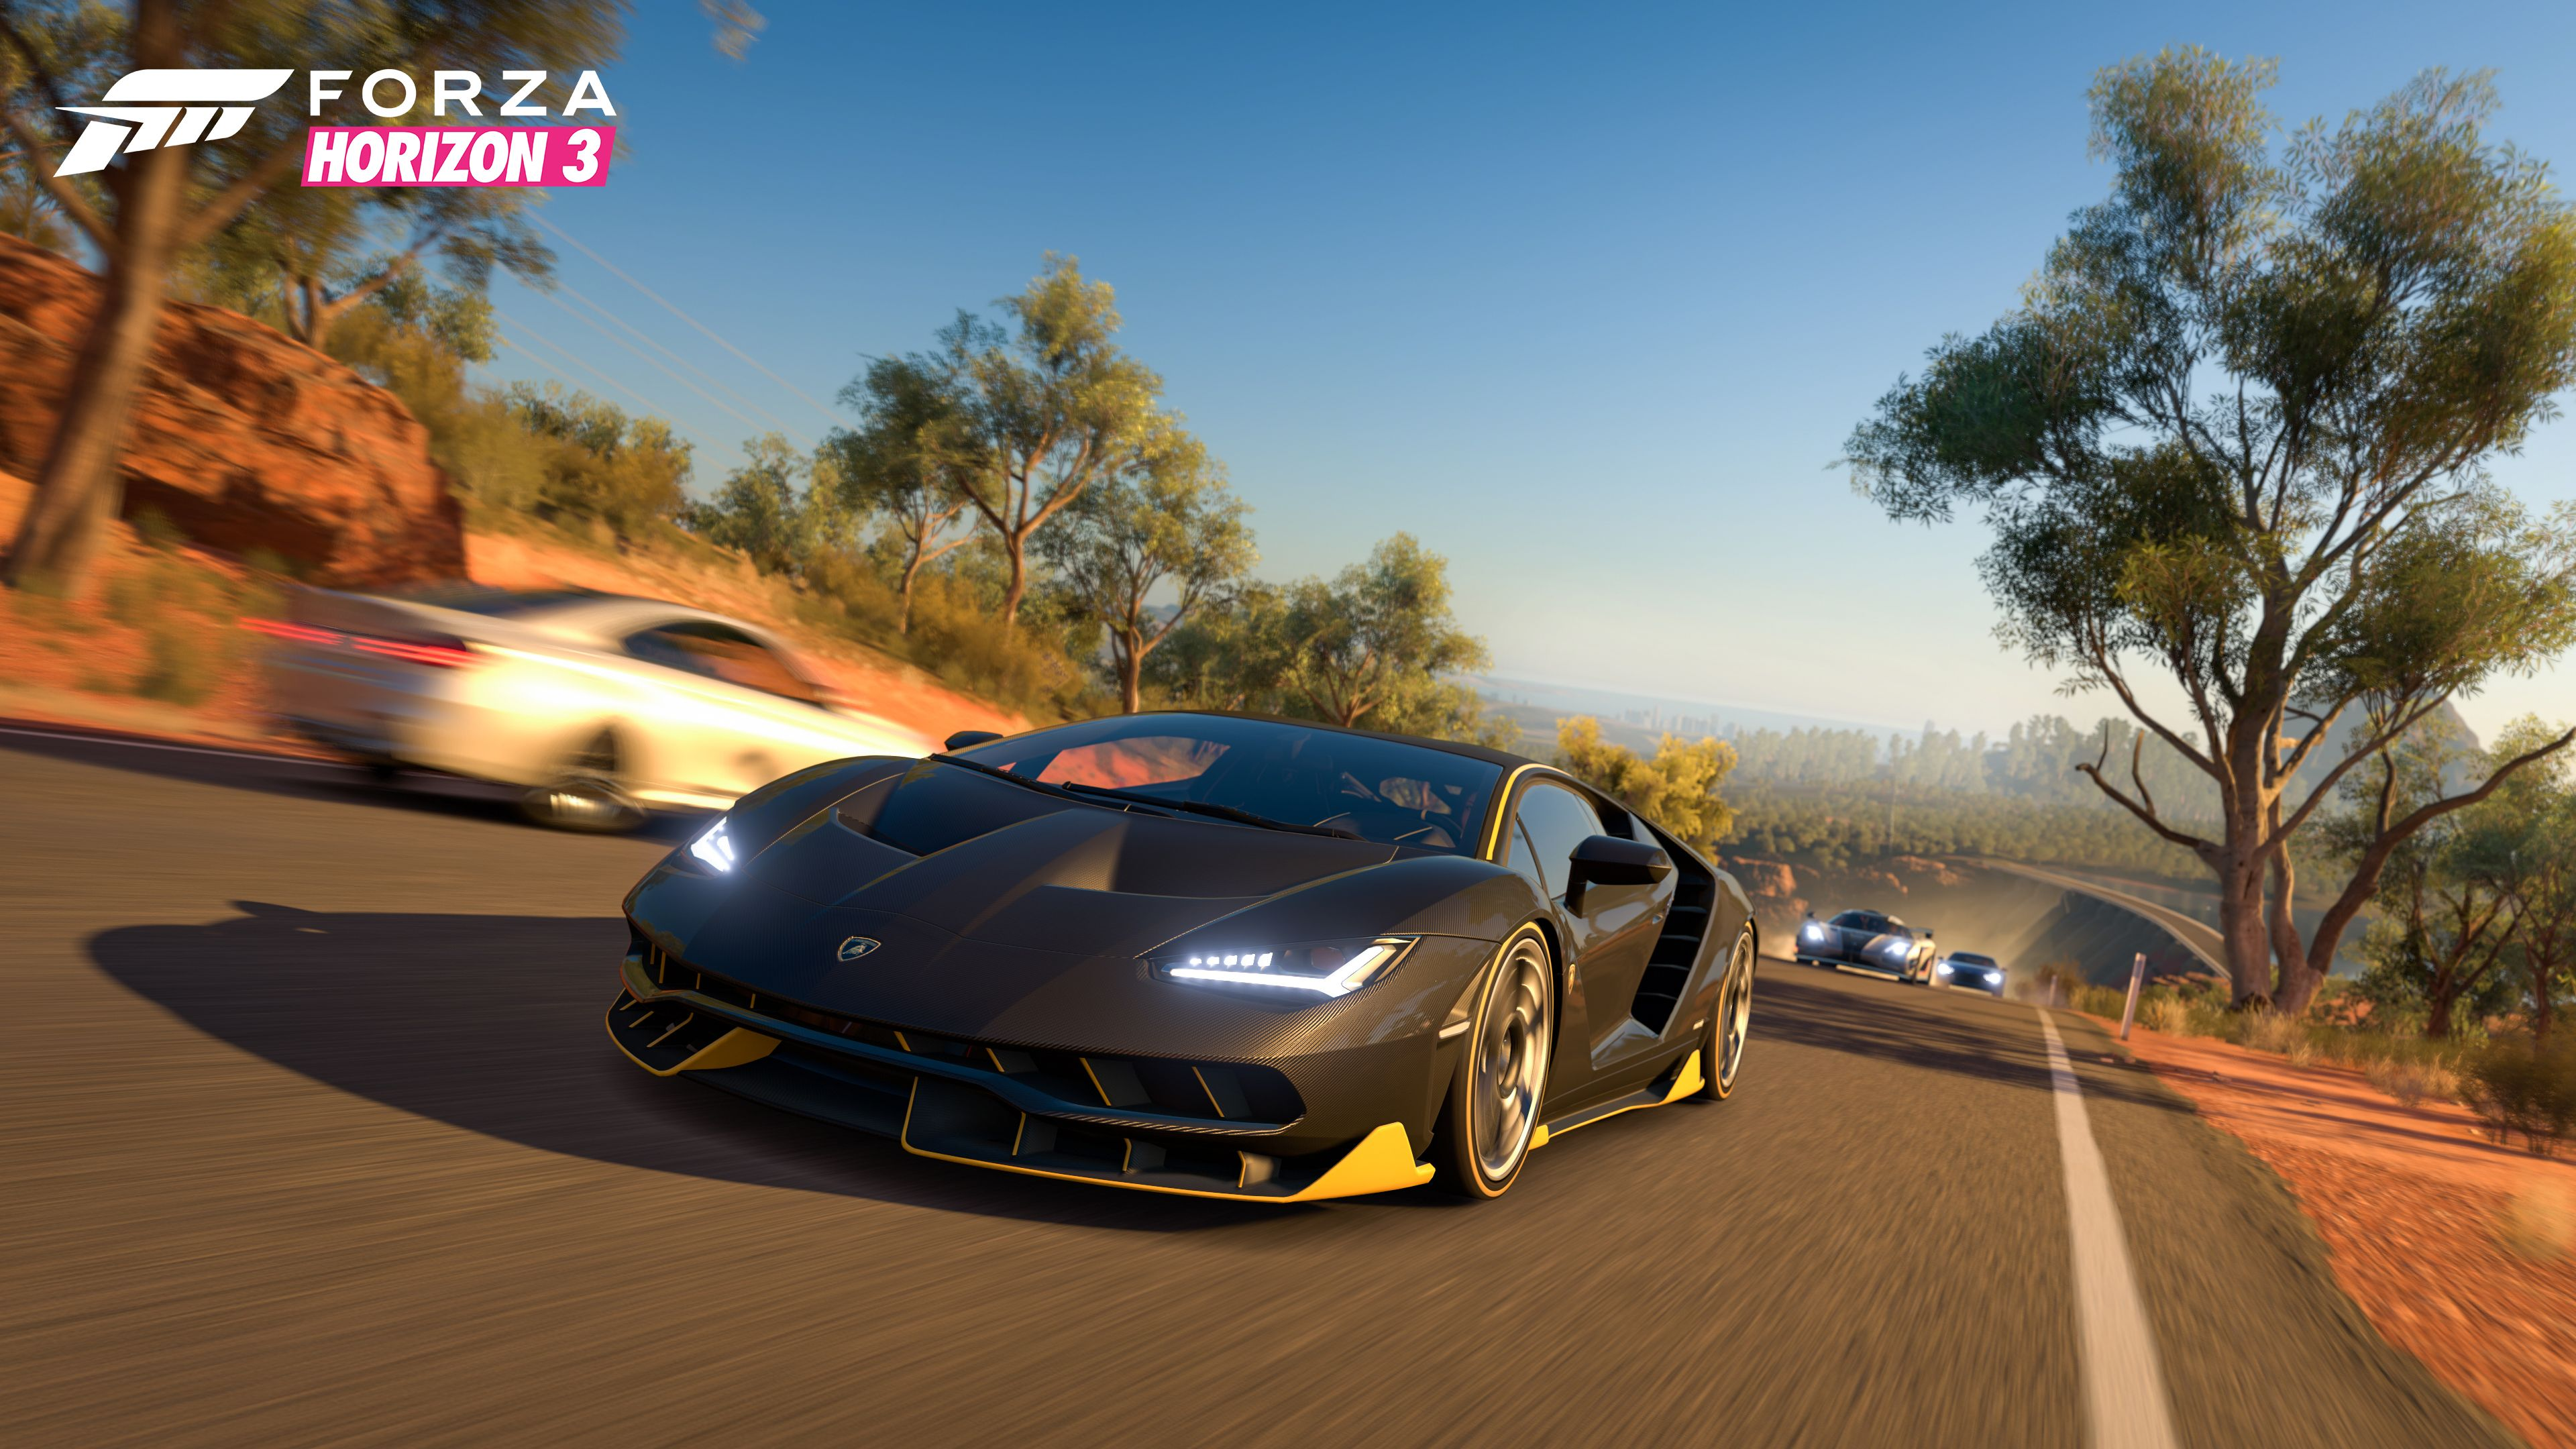 369 Forza Horizon 3 HD Wallpapers Background Images   Wallpaper 3840x2160